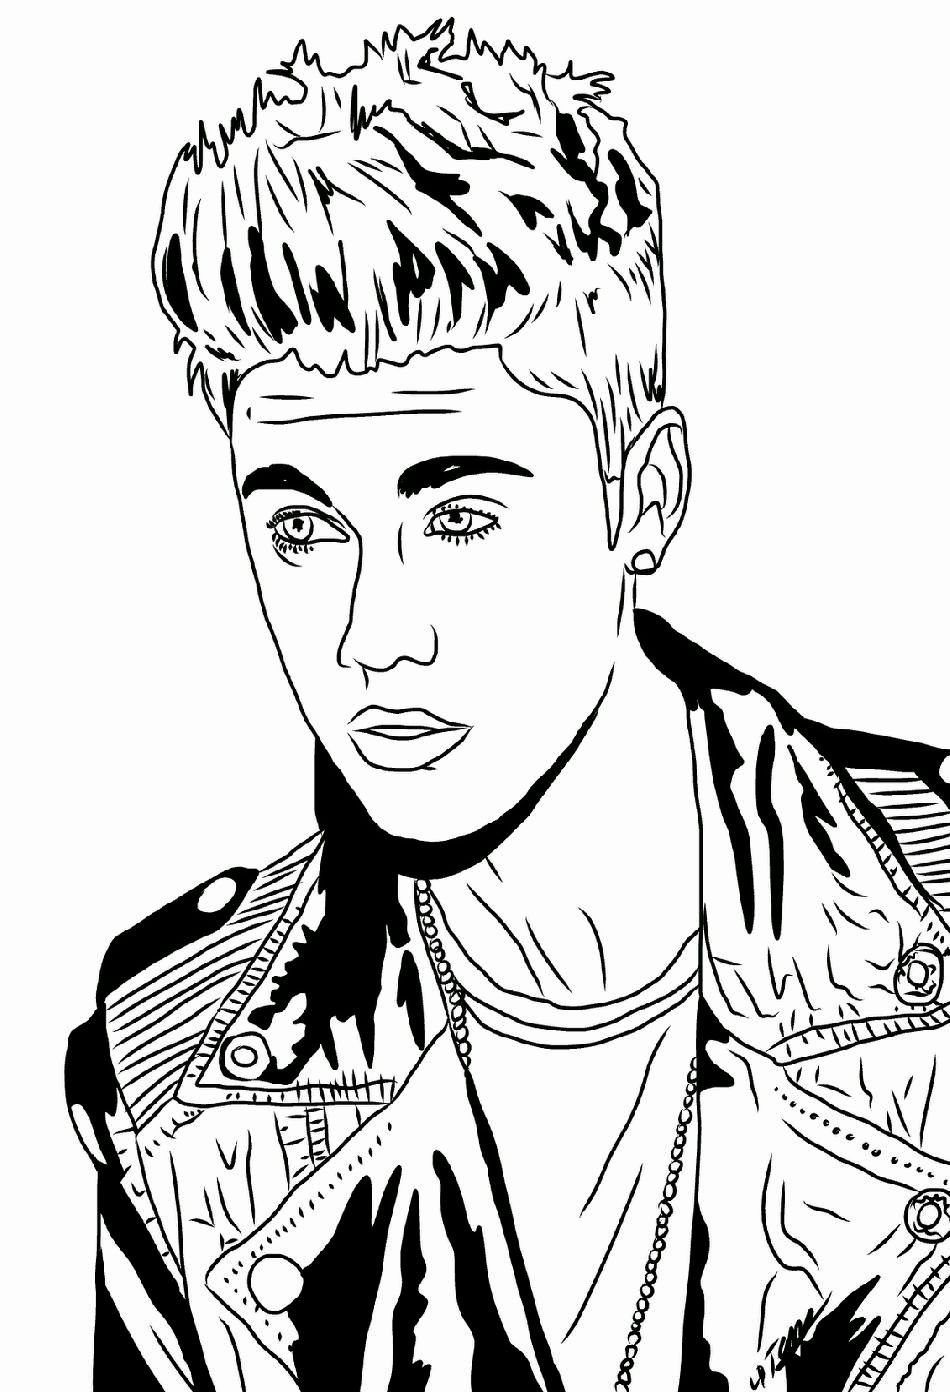 Justin Bieber Coloring Pages Printable Free Lovely Justin Bieber Coloring Pages In 2020 Justin Bieber Sketch Justin Bieber Pictures Justin Bieber